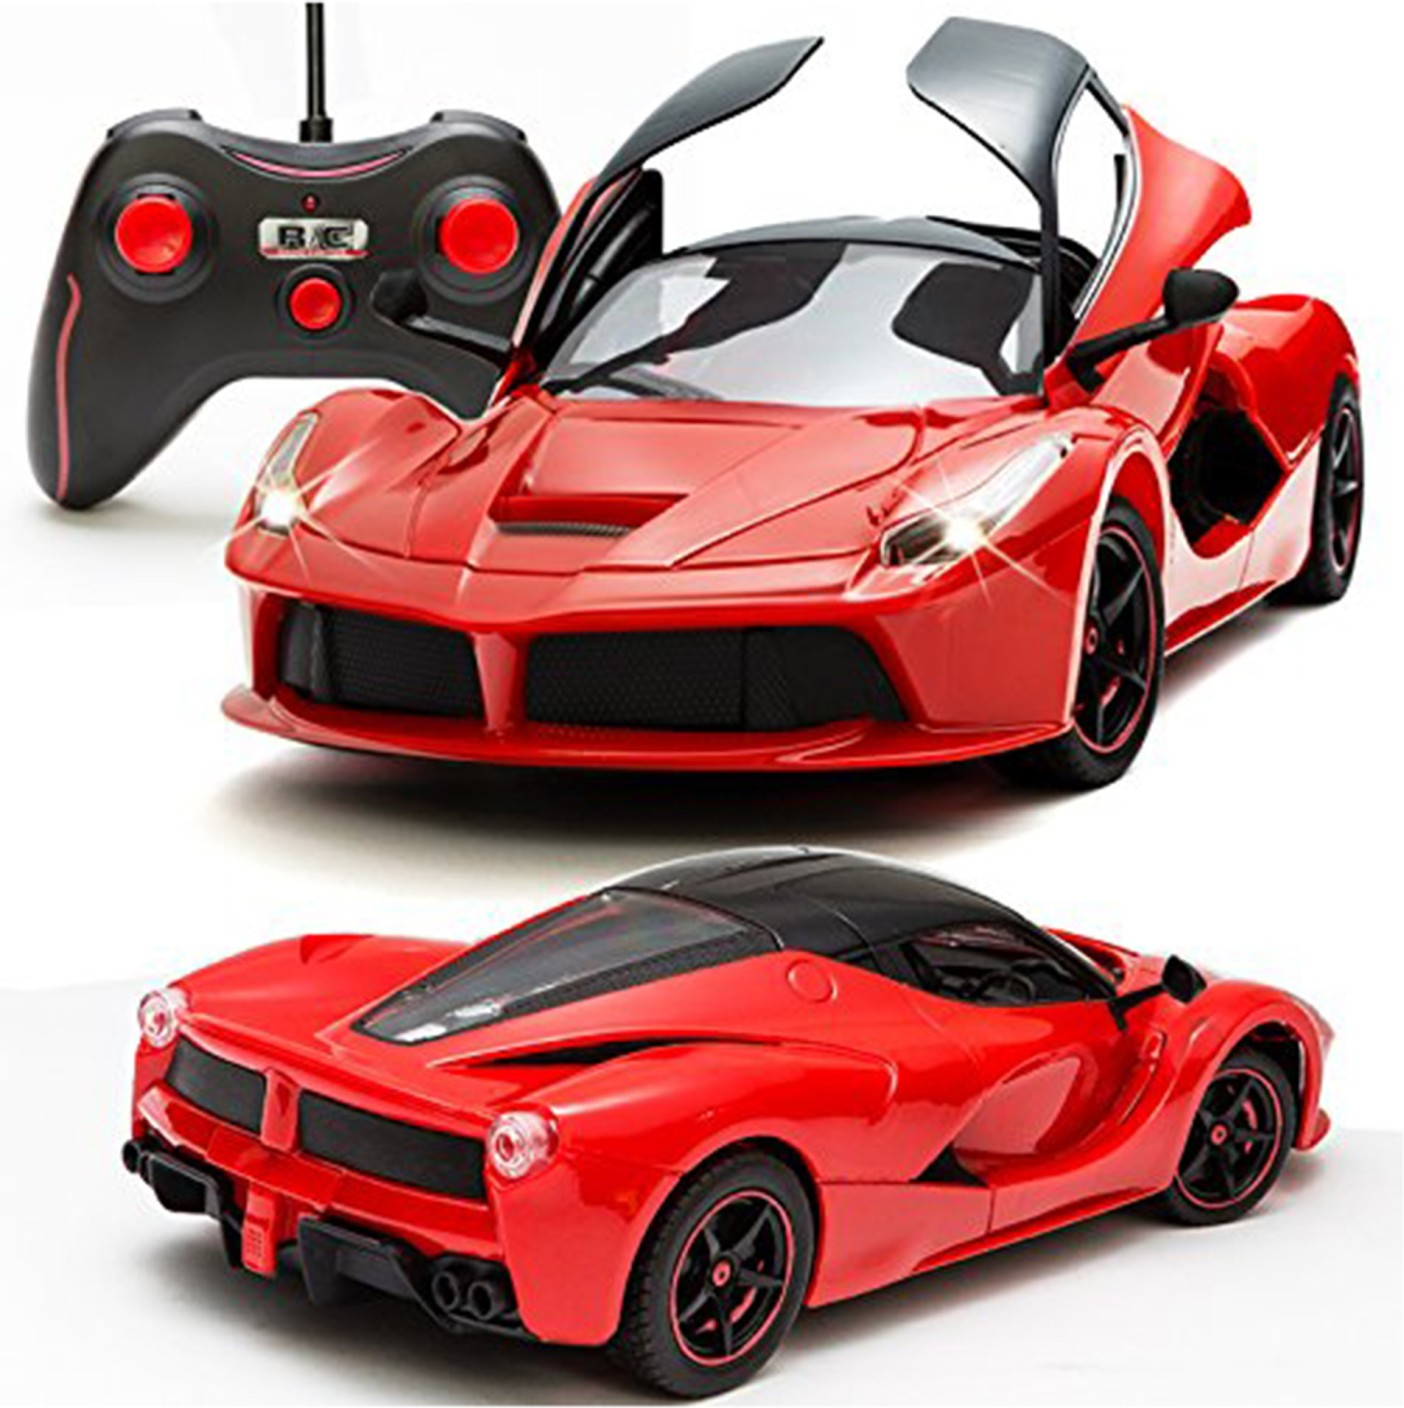 Smiles Creation Scale Rechargeable Remote Control Super Car